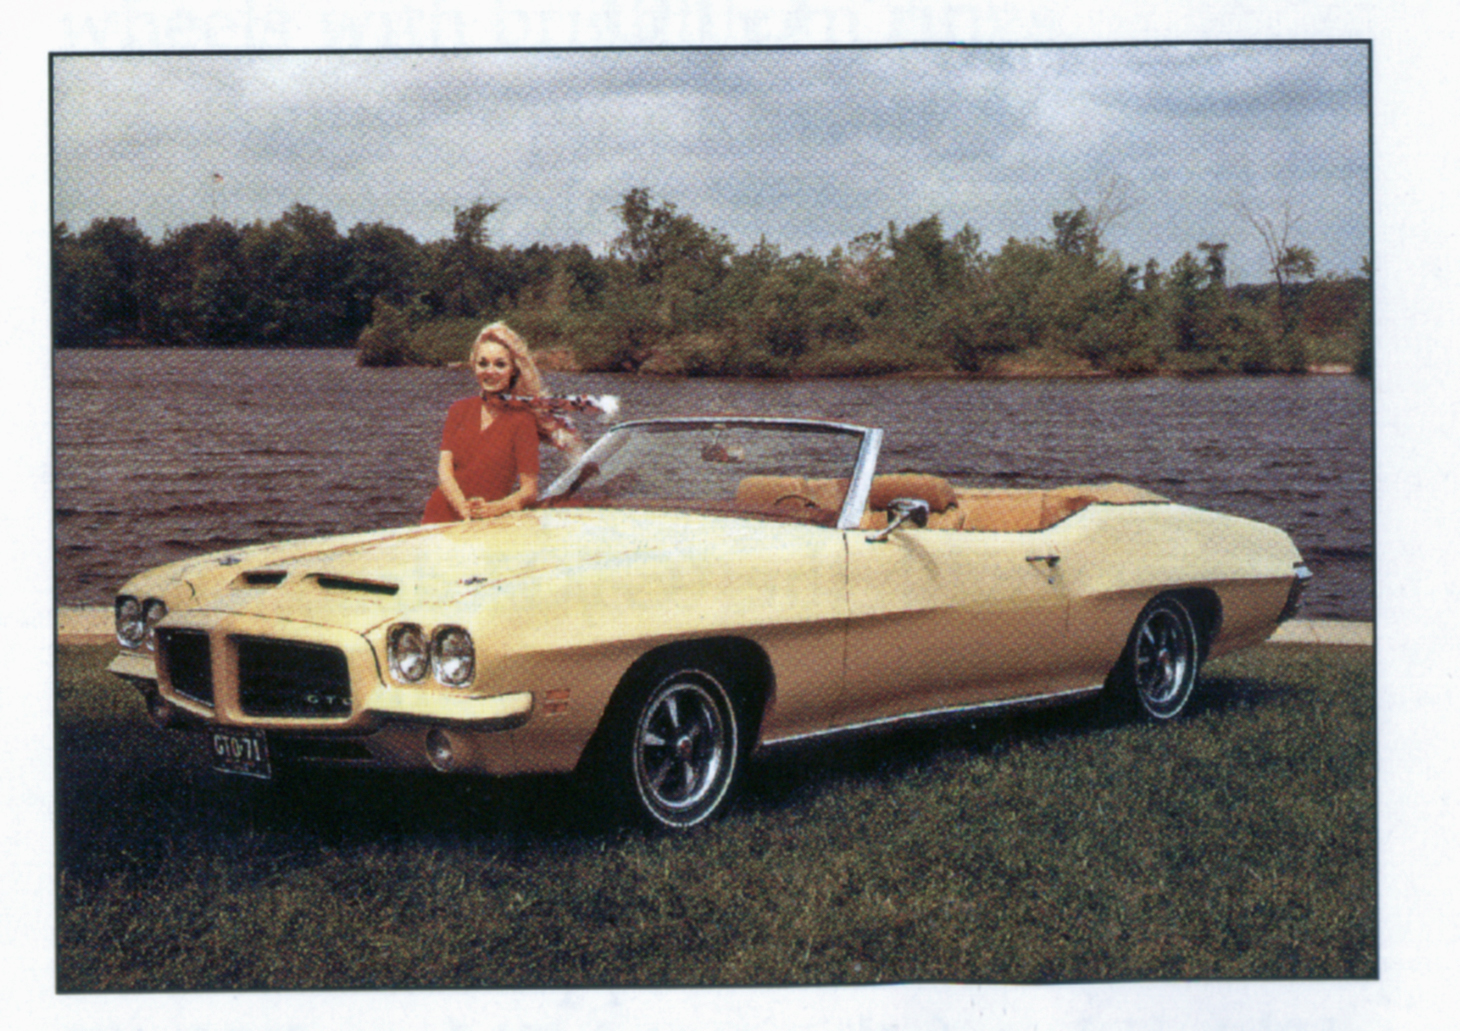 medium resolution of a 1972 gto convertible has been a popular urban legend for decades due to a simple typo in an early pre 1975 pontiac motor division report